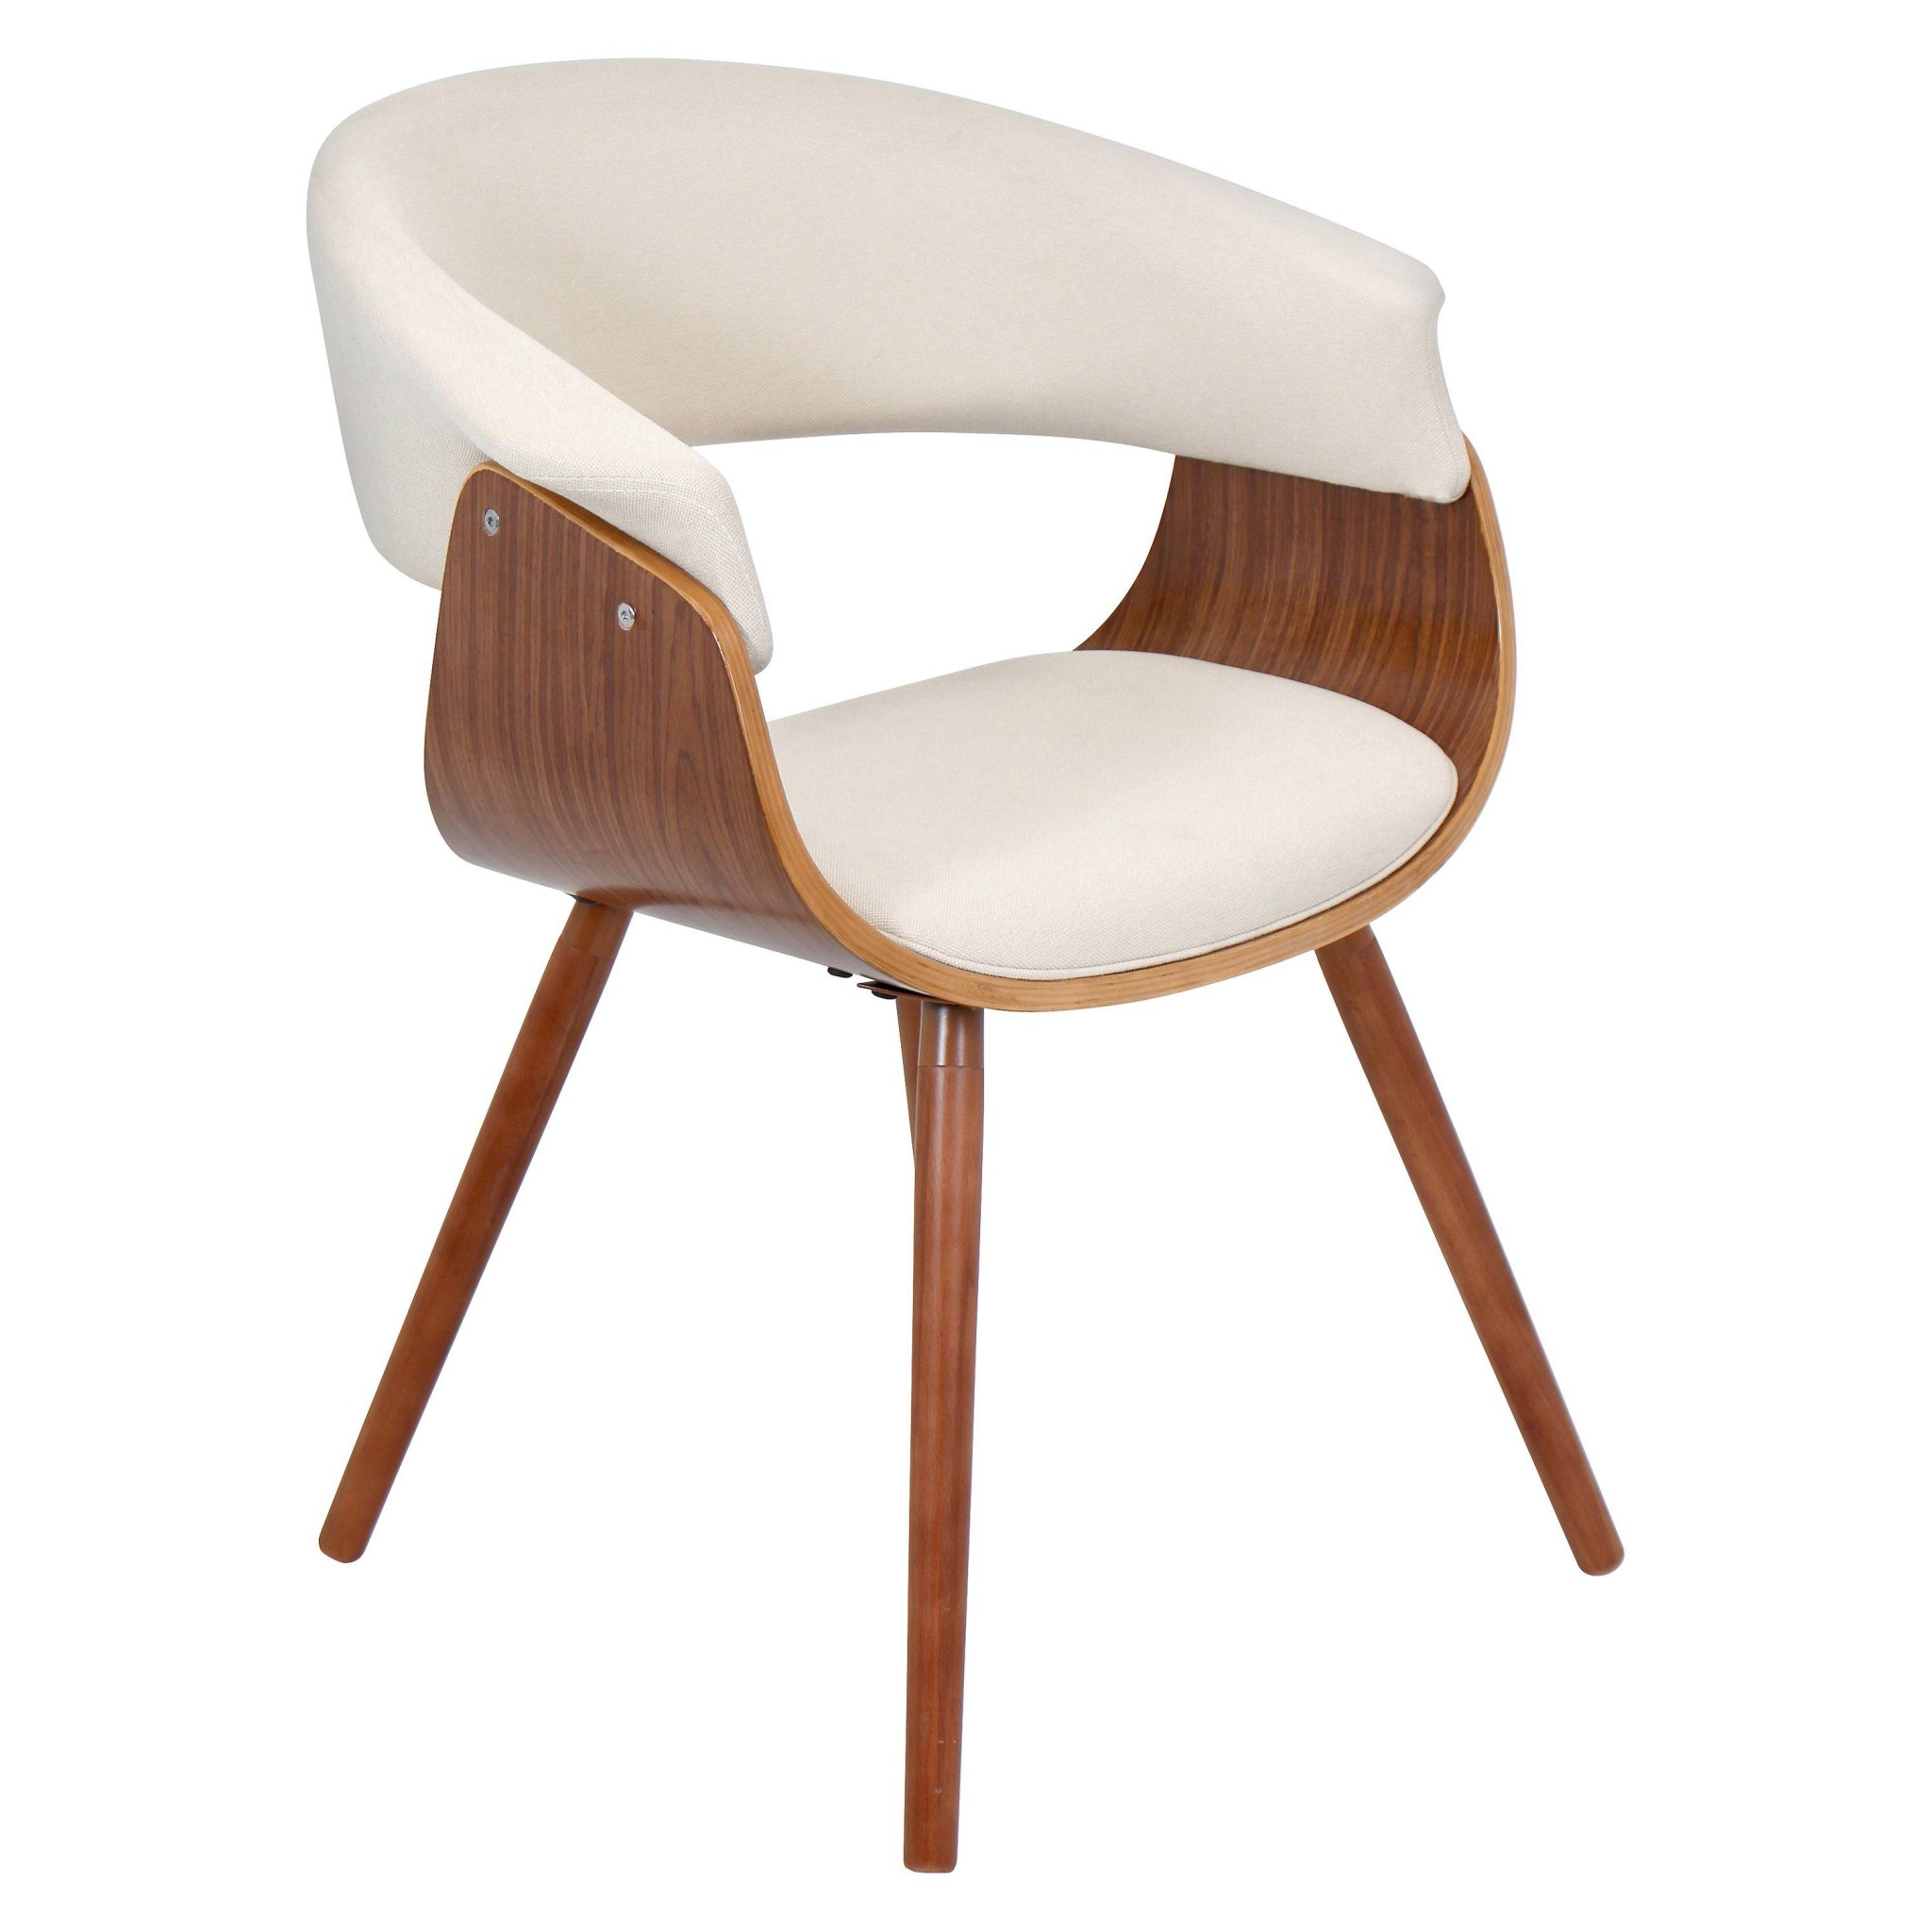 8 Lesser Known Midcentury Modern Chairs for Every Style